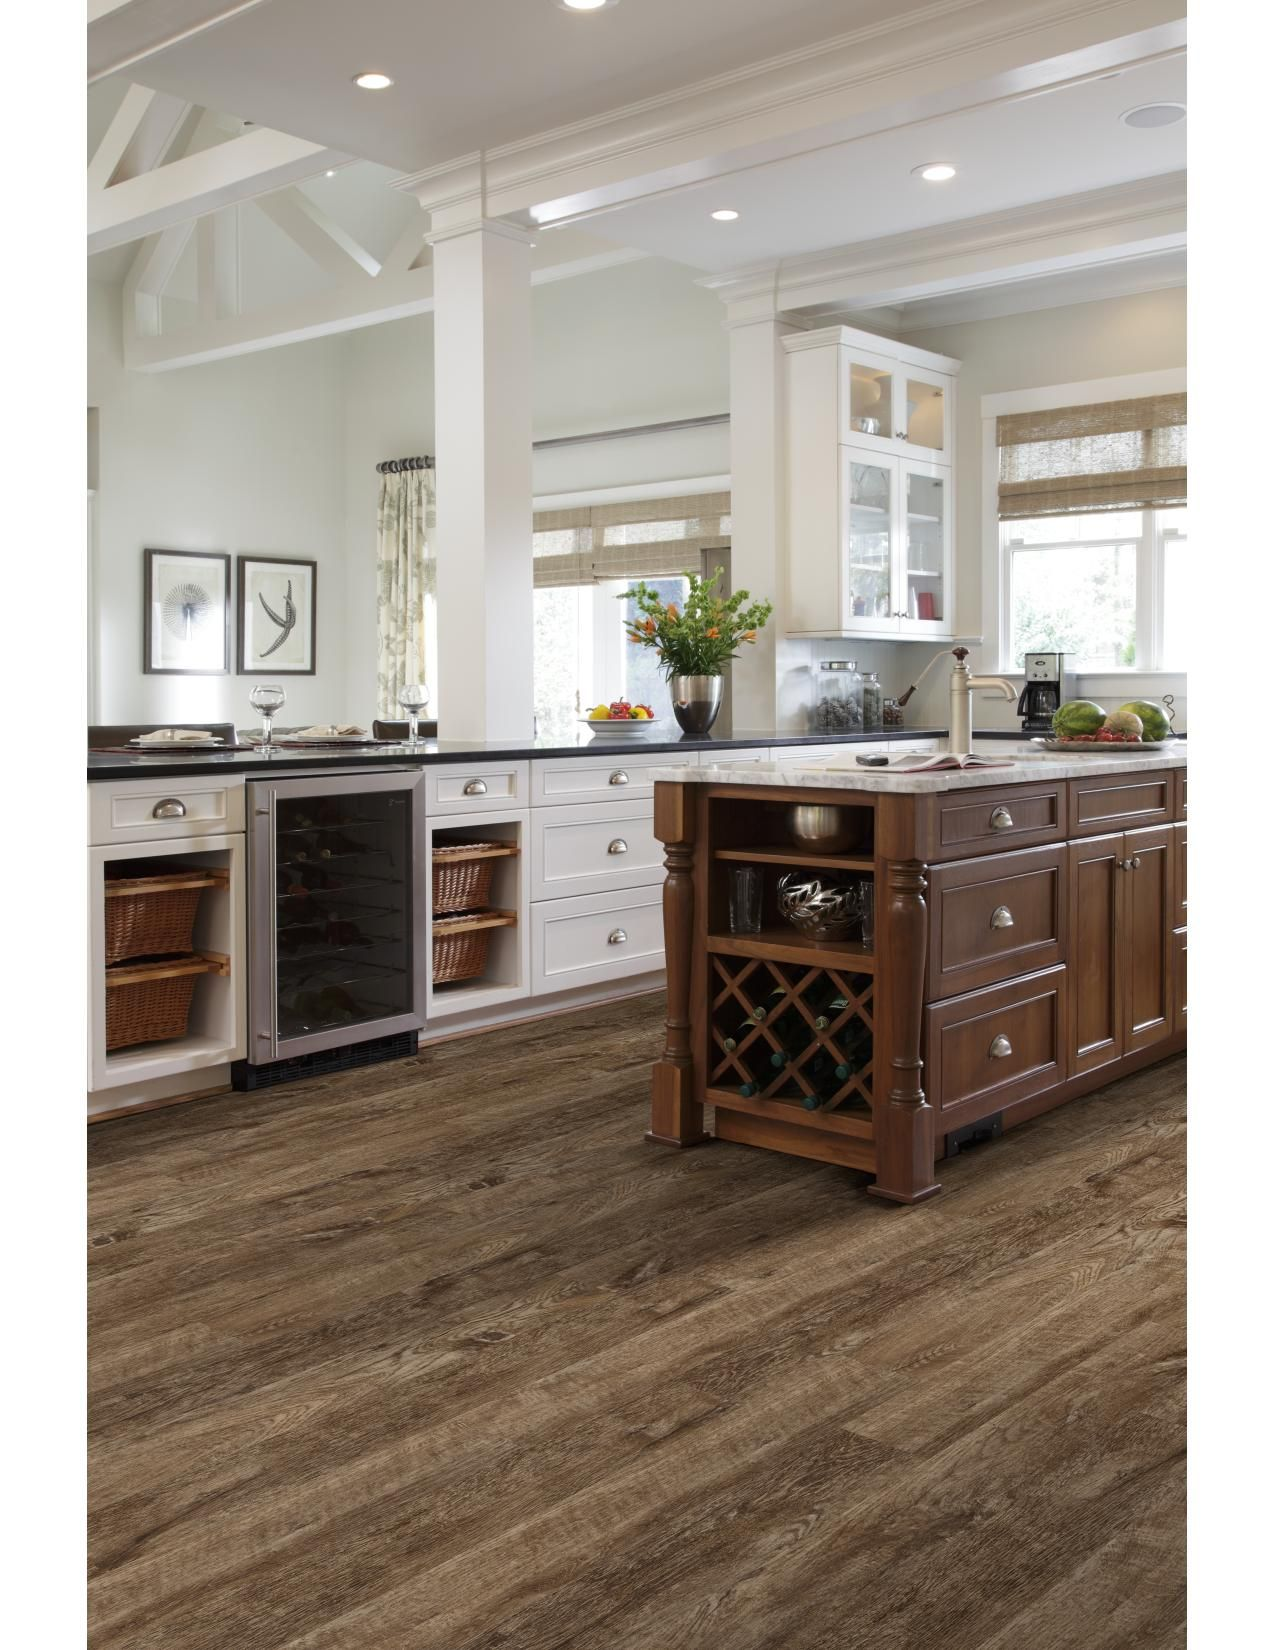 Downs h2o shaw harvest flooring from flooringamerica vinyl tiles downs h2o shaw harvest flooring from flooringamerica dailygadgetfo Choice Image